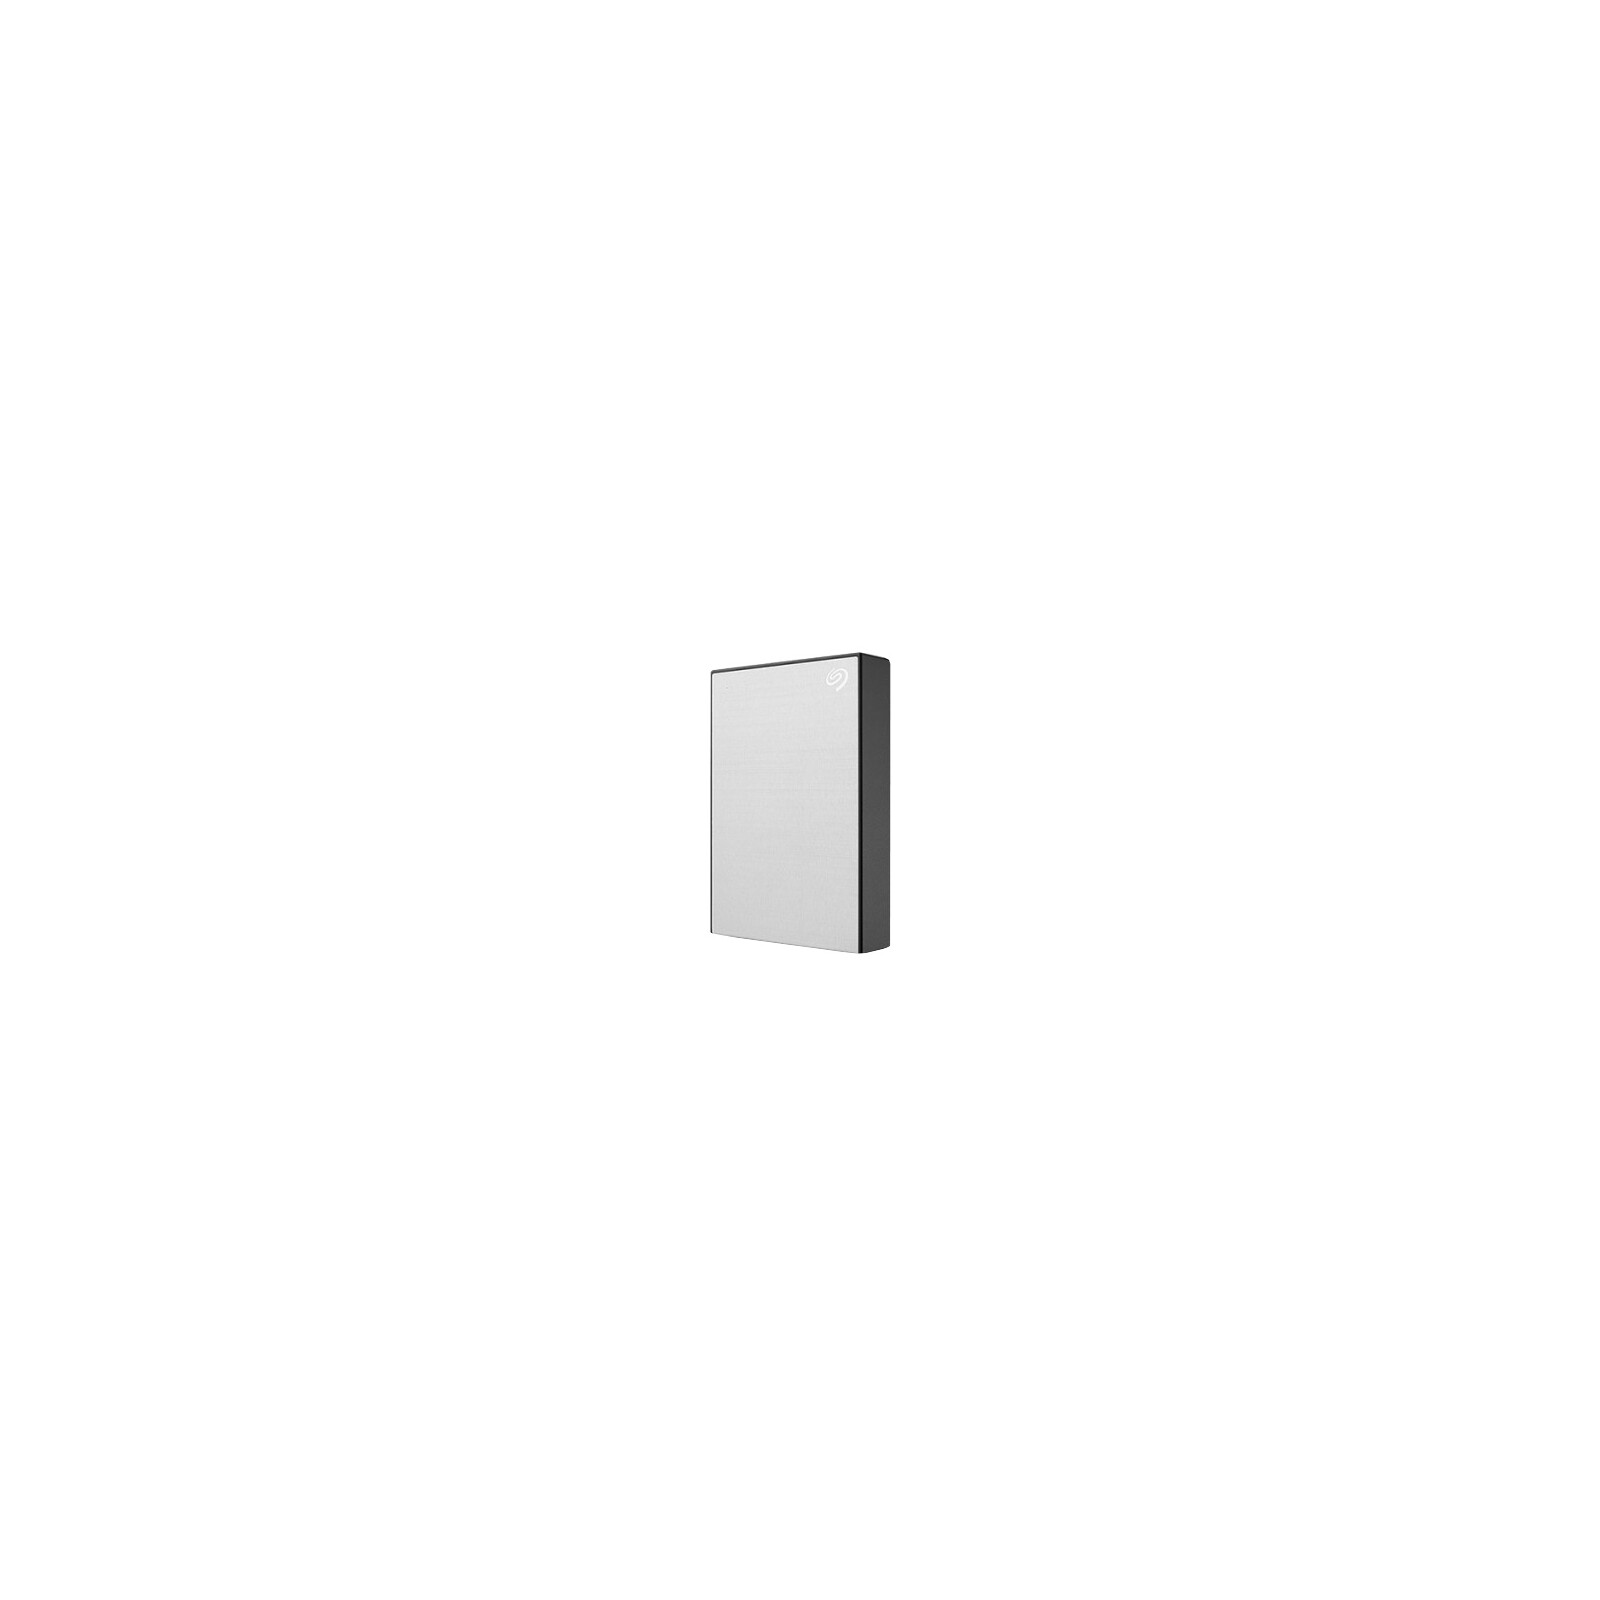 Seagate One Touch 5TB USB 3 silver